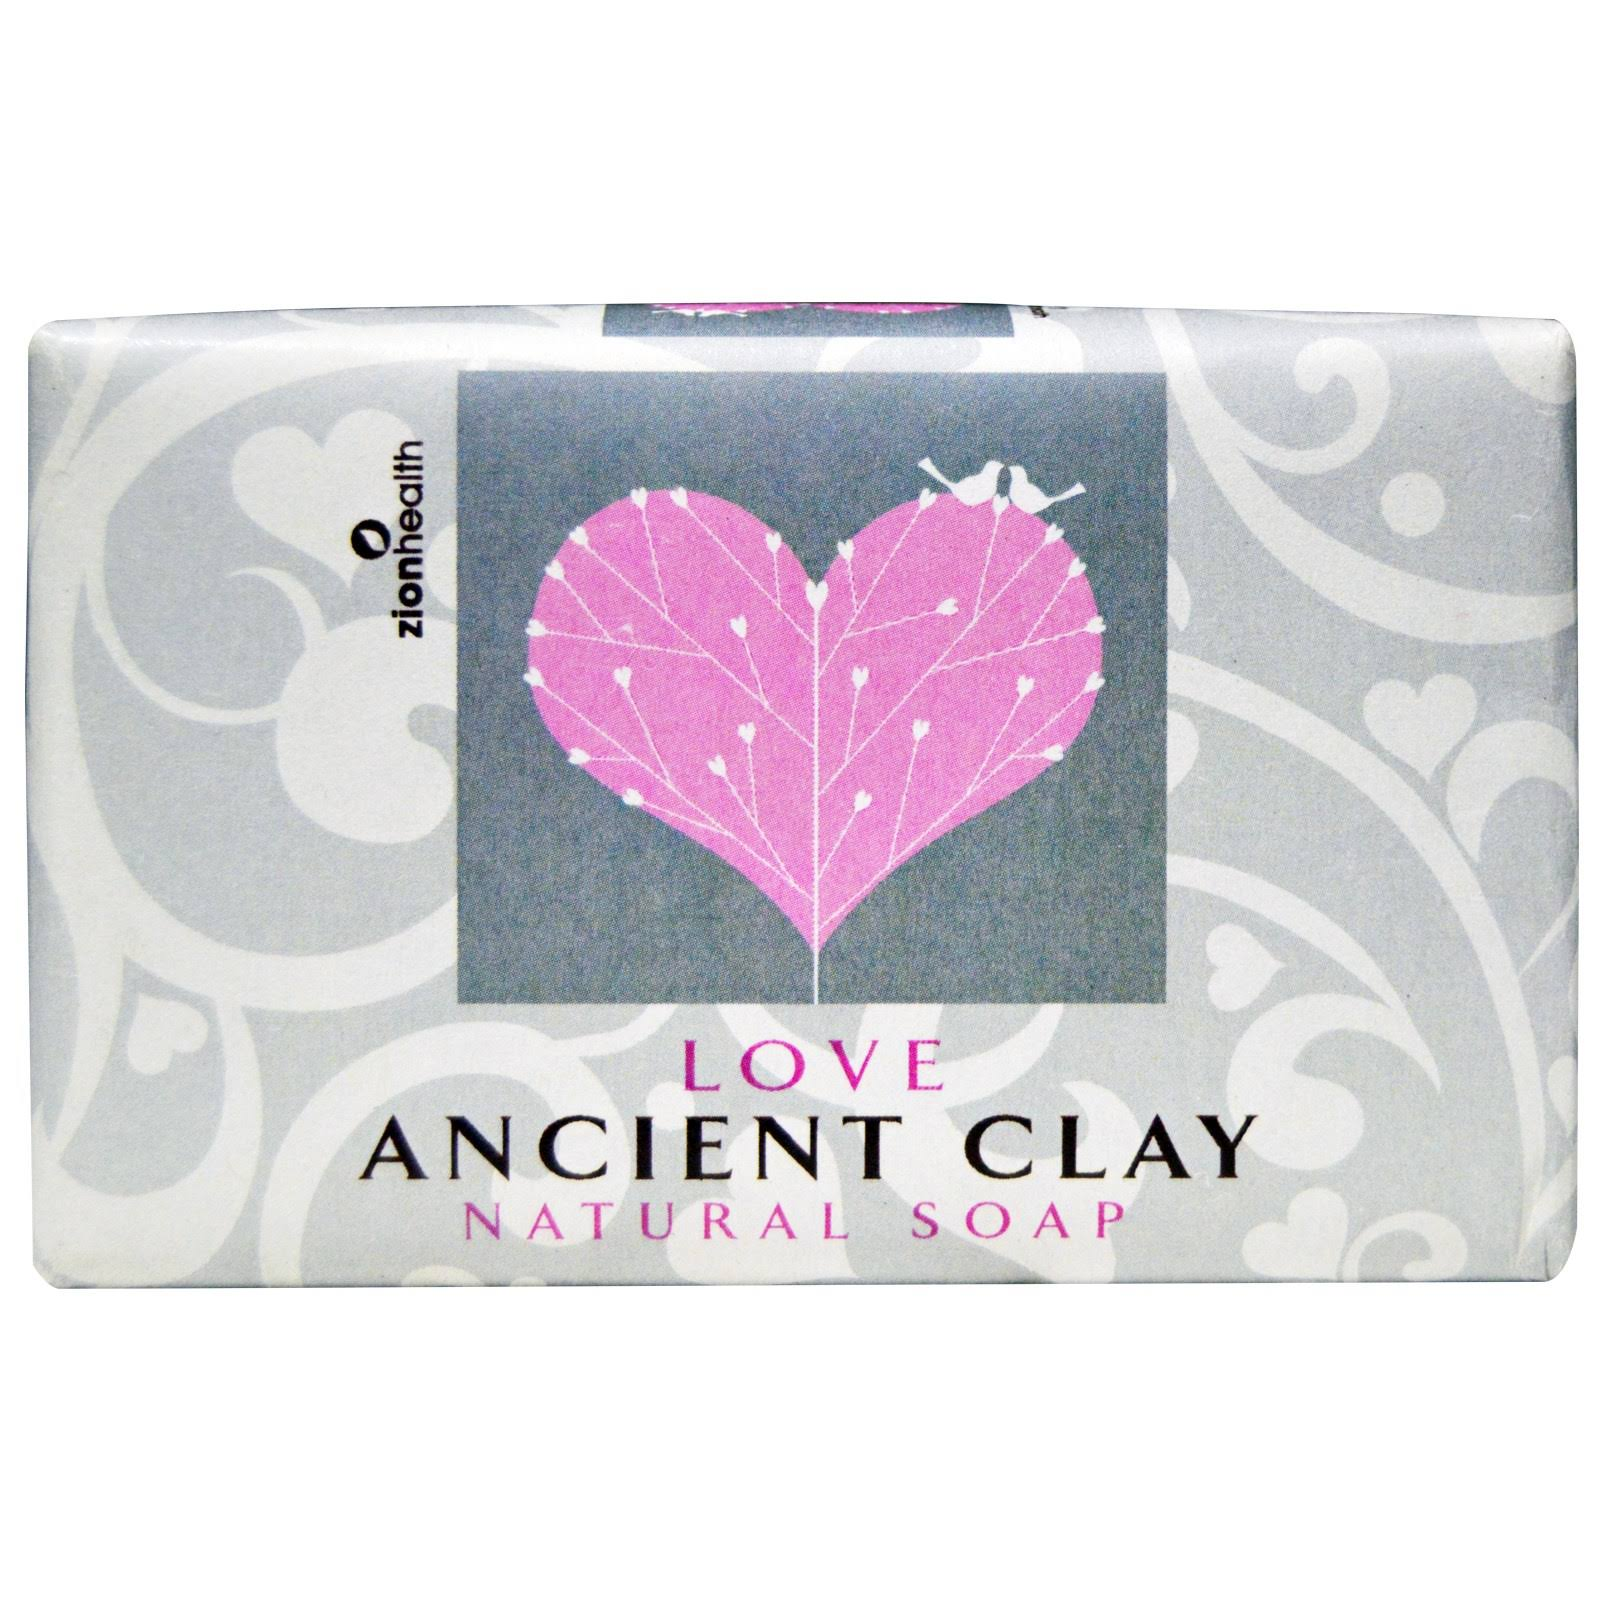 Zion Health Good Love Ancient Clay Soap Bar - 6oz